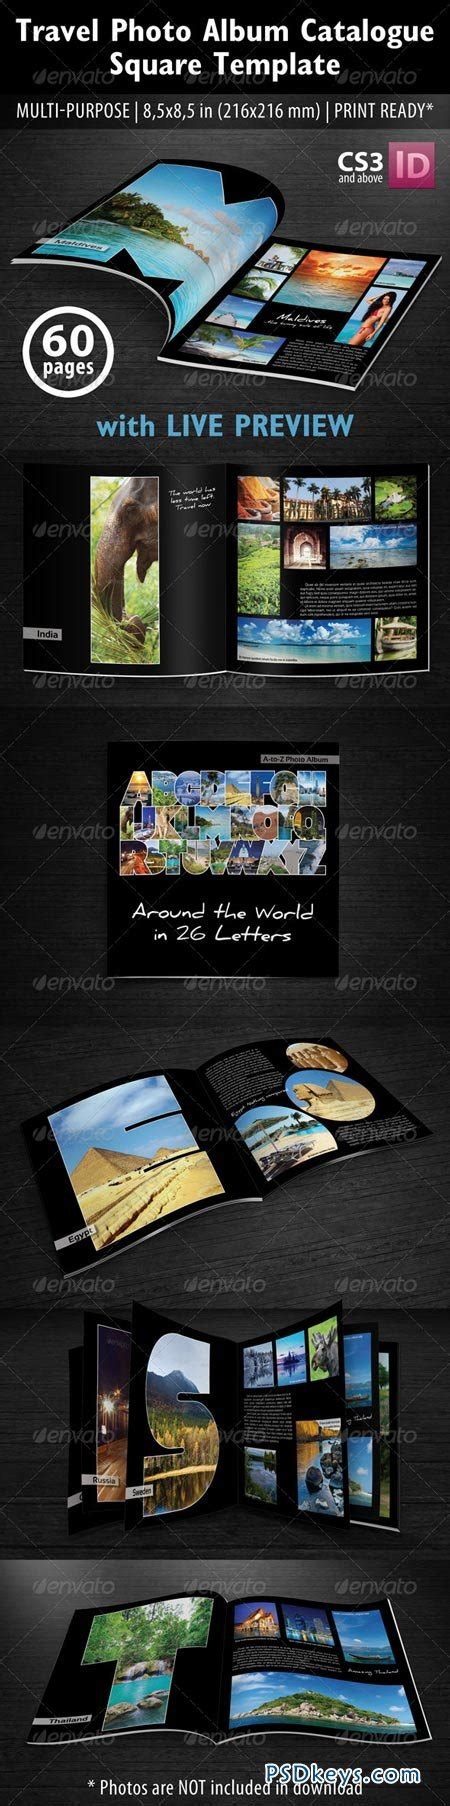 Travel Photo Album Catlog Square Template 5398410 187 Free Download Photoshop Vector Stock Image Travel Album Template